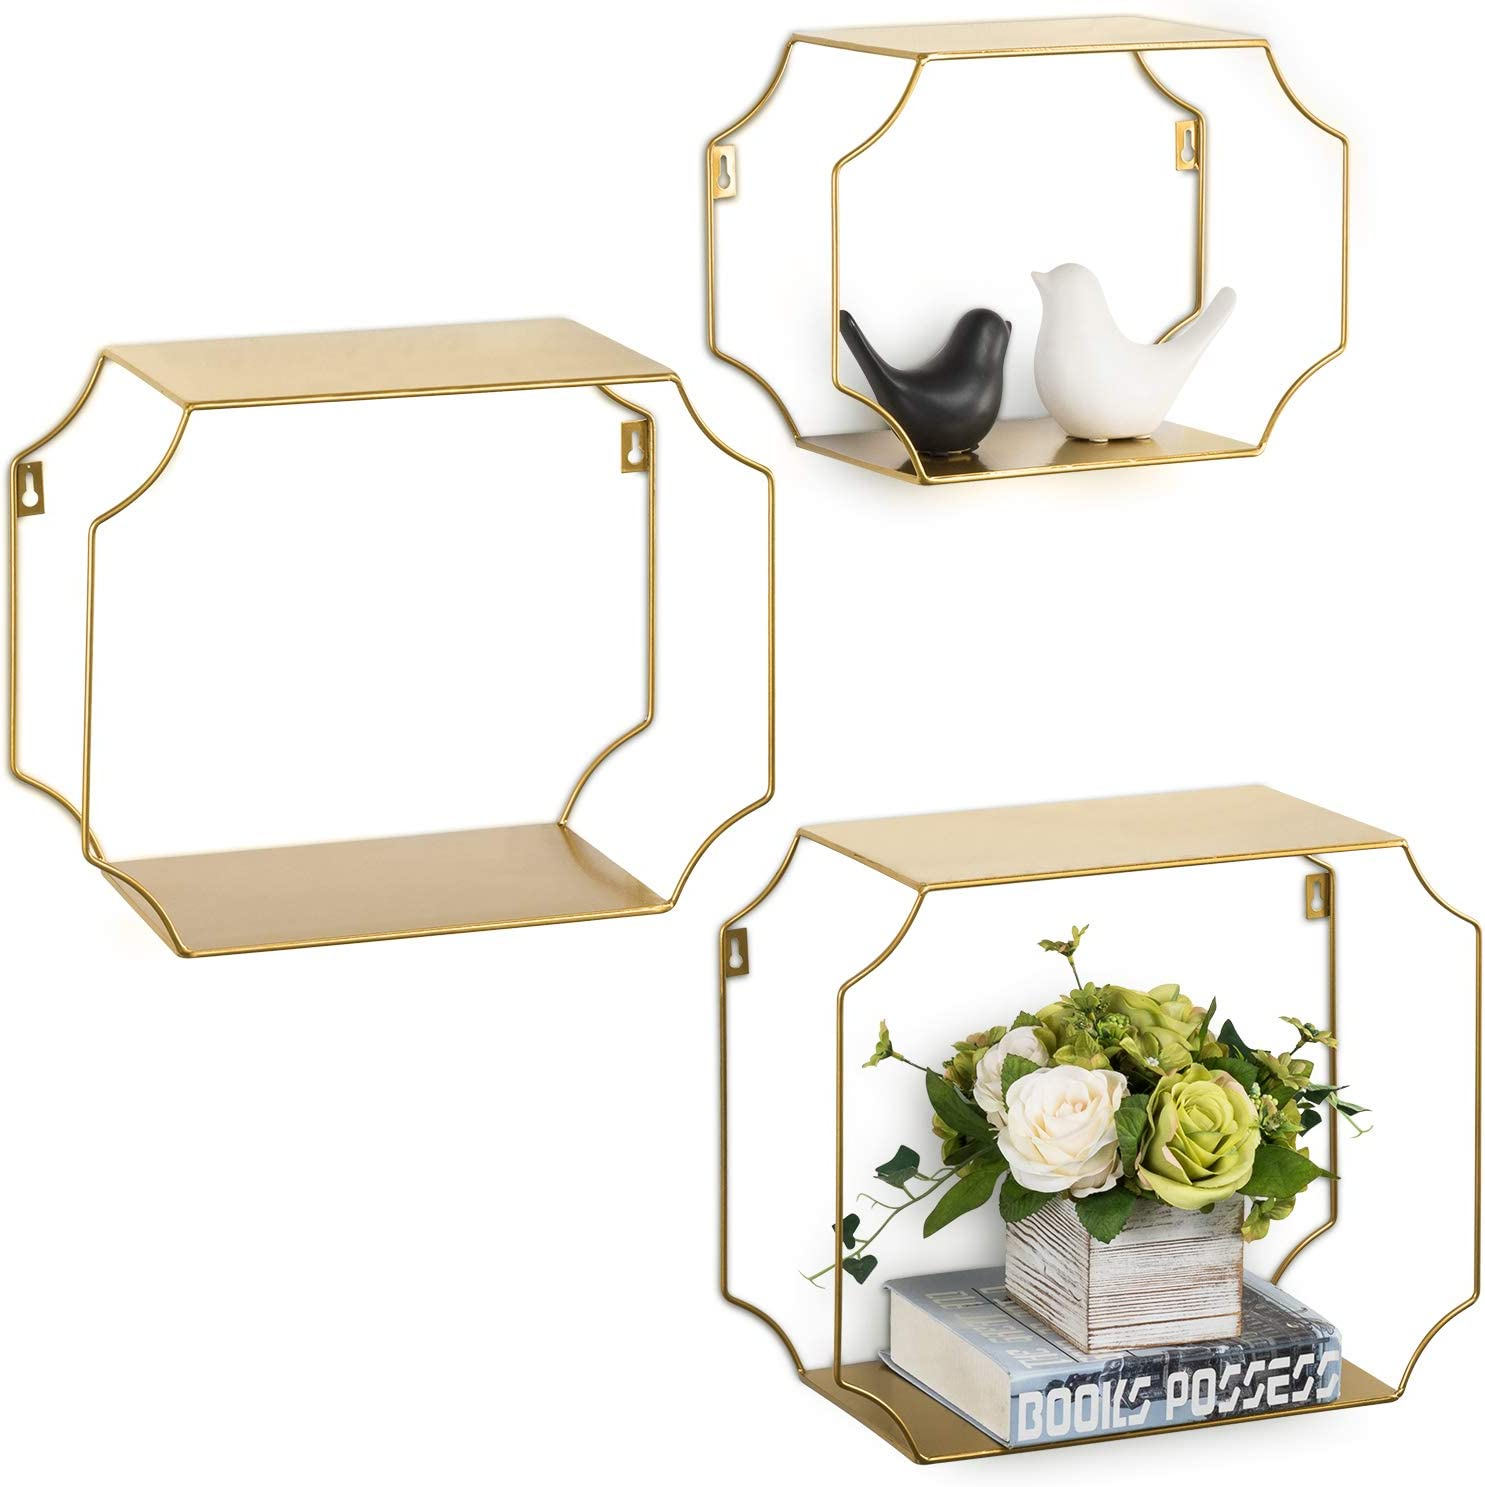 MyGift Vintage Brass Tone Wall-Mounted Decorative Metal Floating Shelves, Set of 3